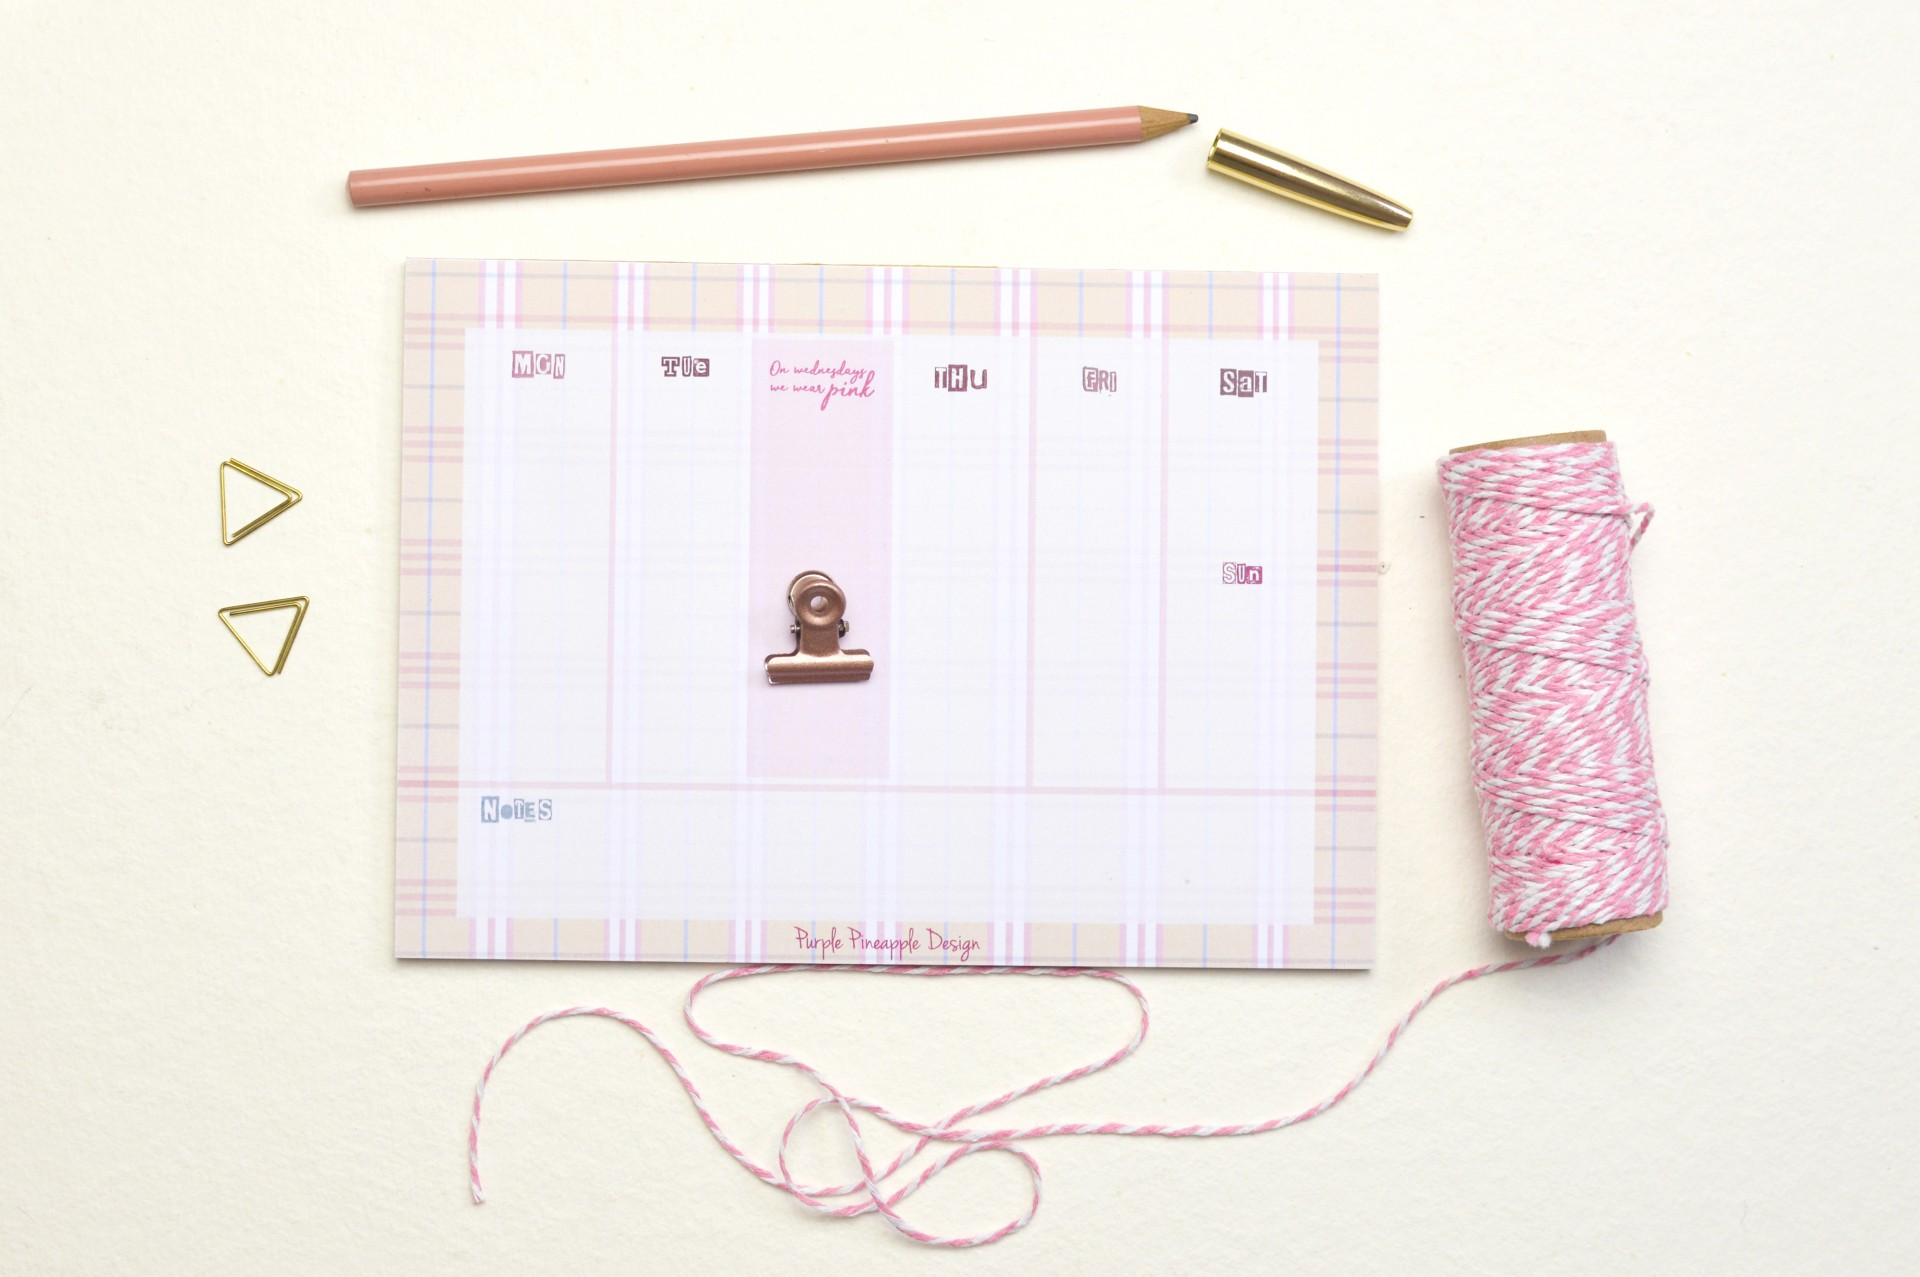 On Wednesdays we wear pink! - Planner Semanal